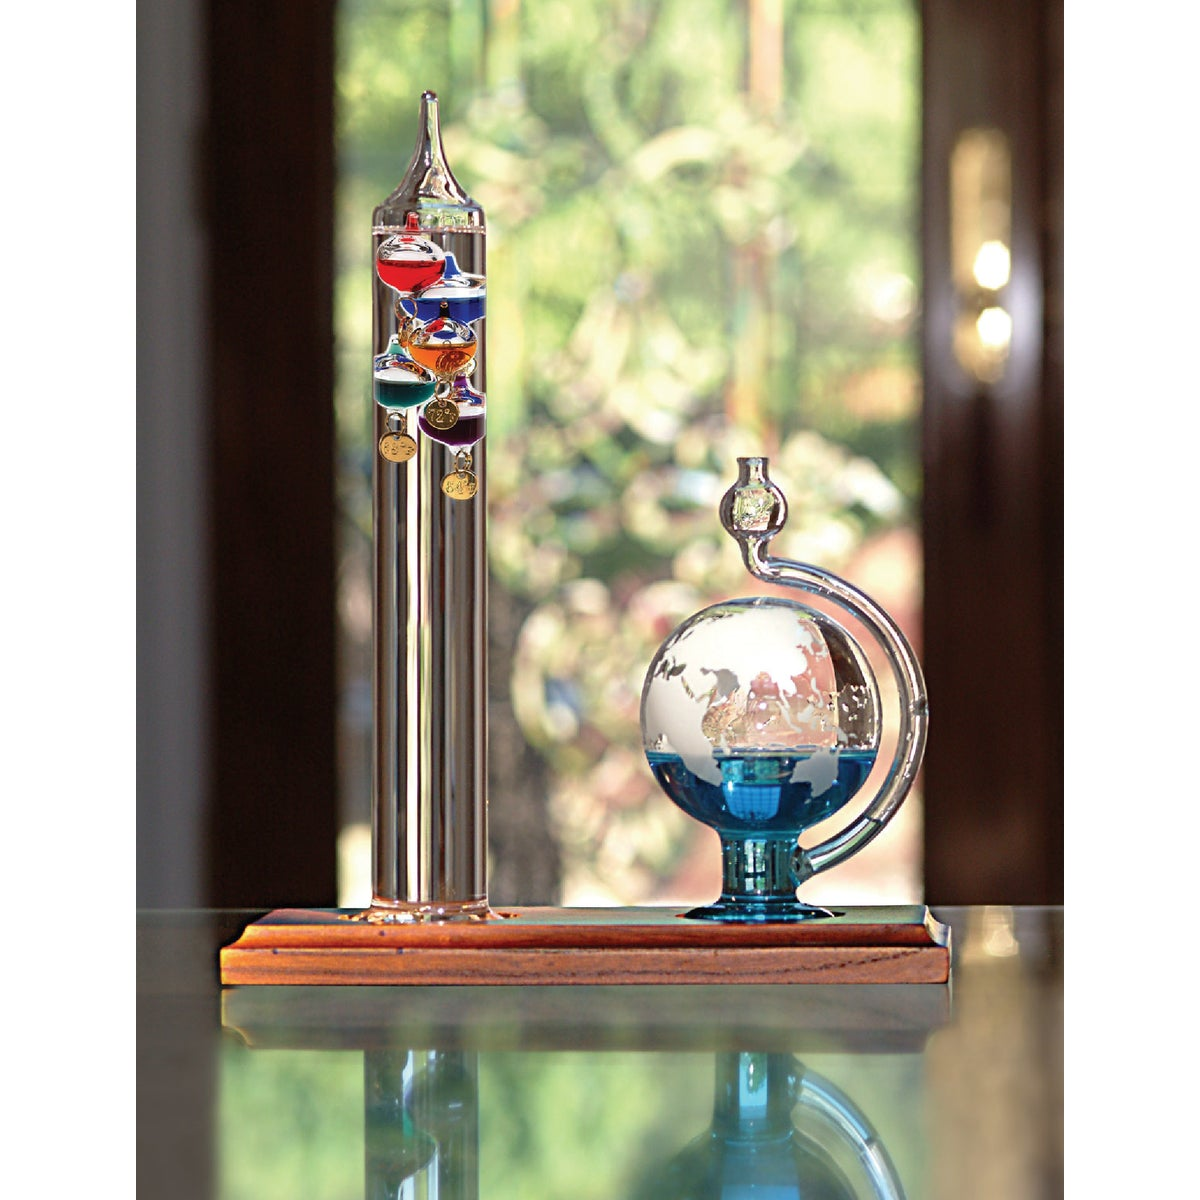 GALILEO BARO/THERMOMETER - 00795 by Chaney Instrument Co